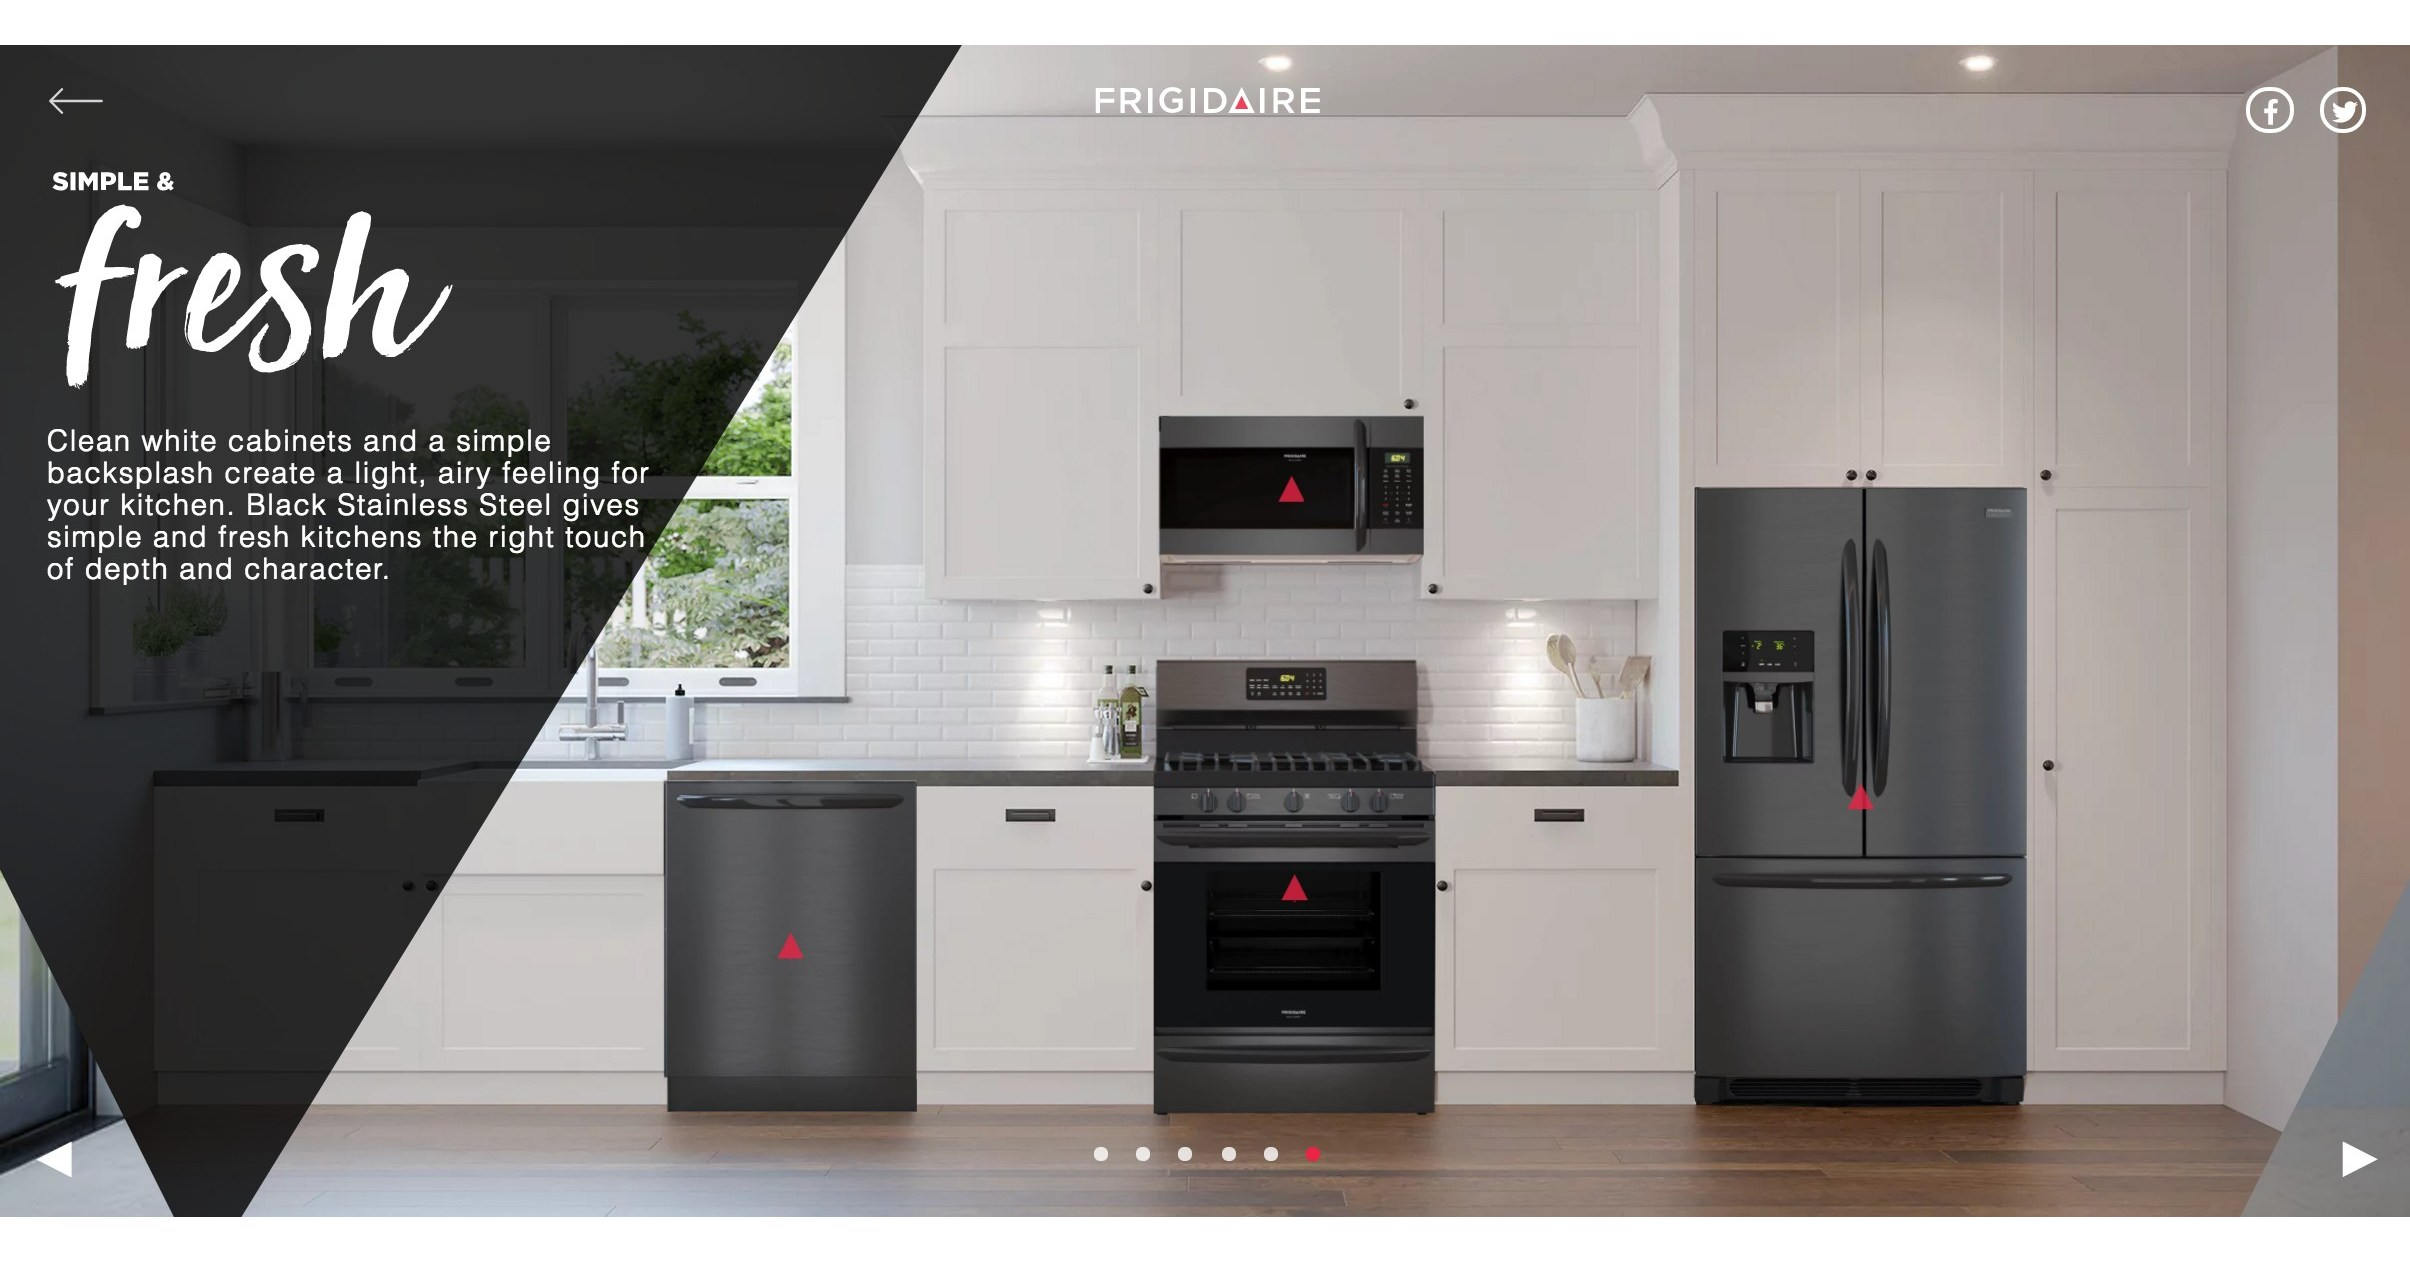 The New Frigidaire Gallery 174 Smudge Proof Black Stainless